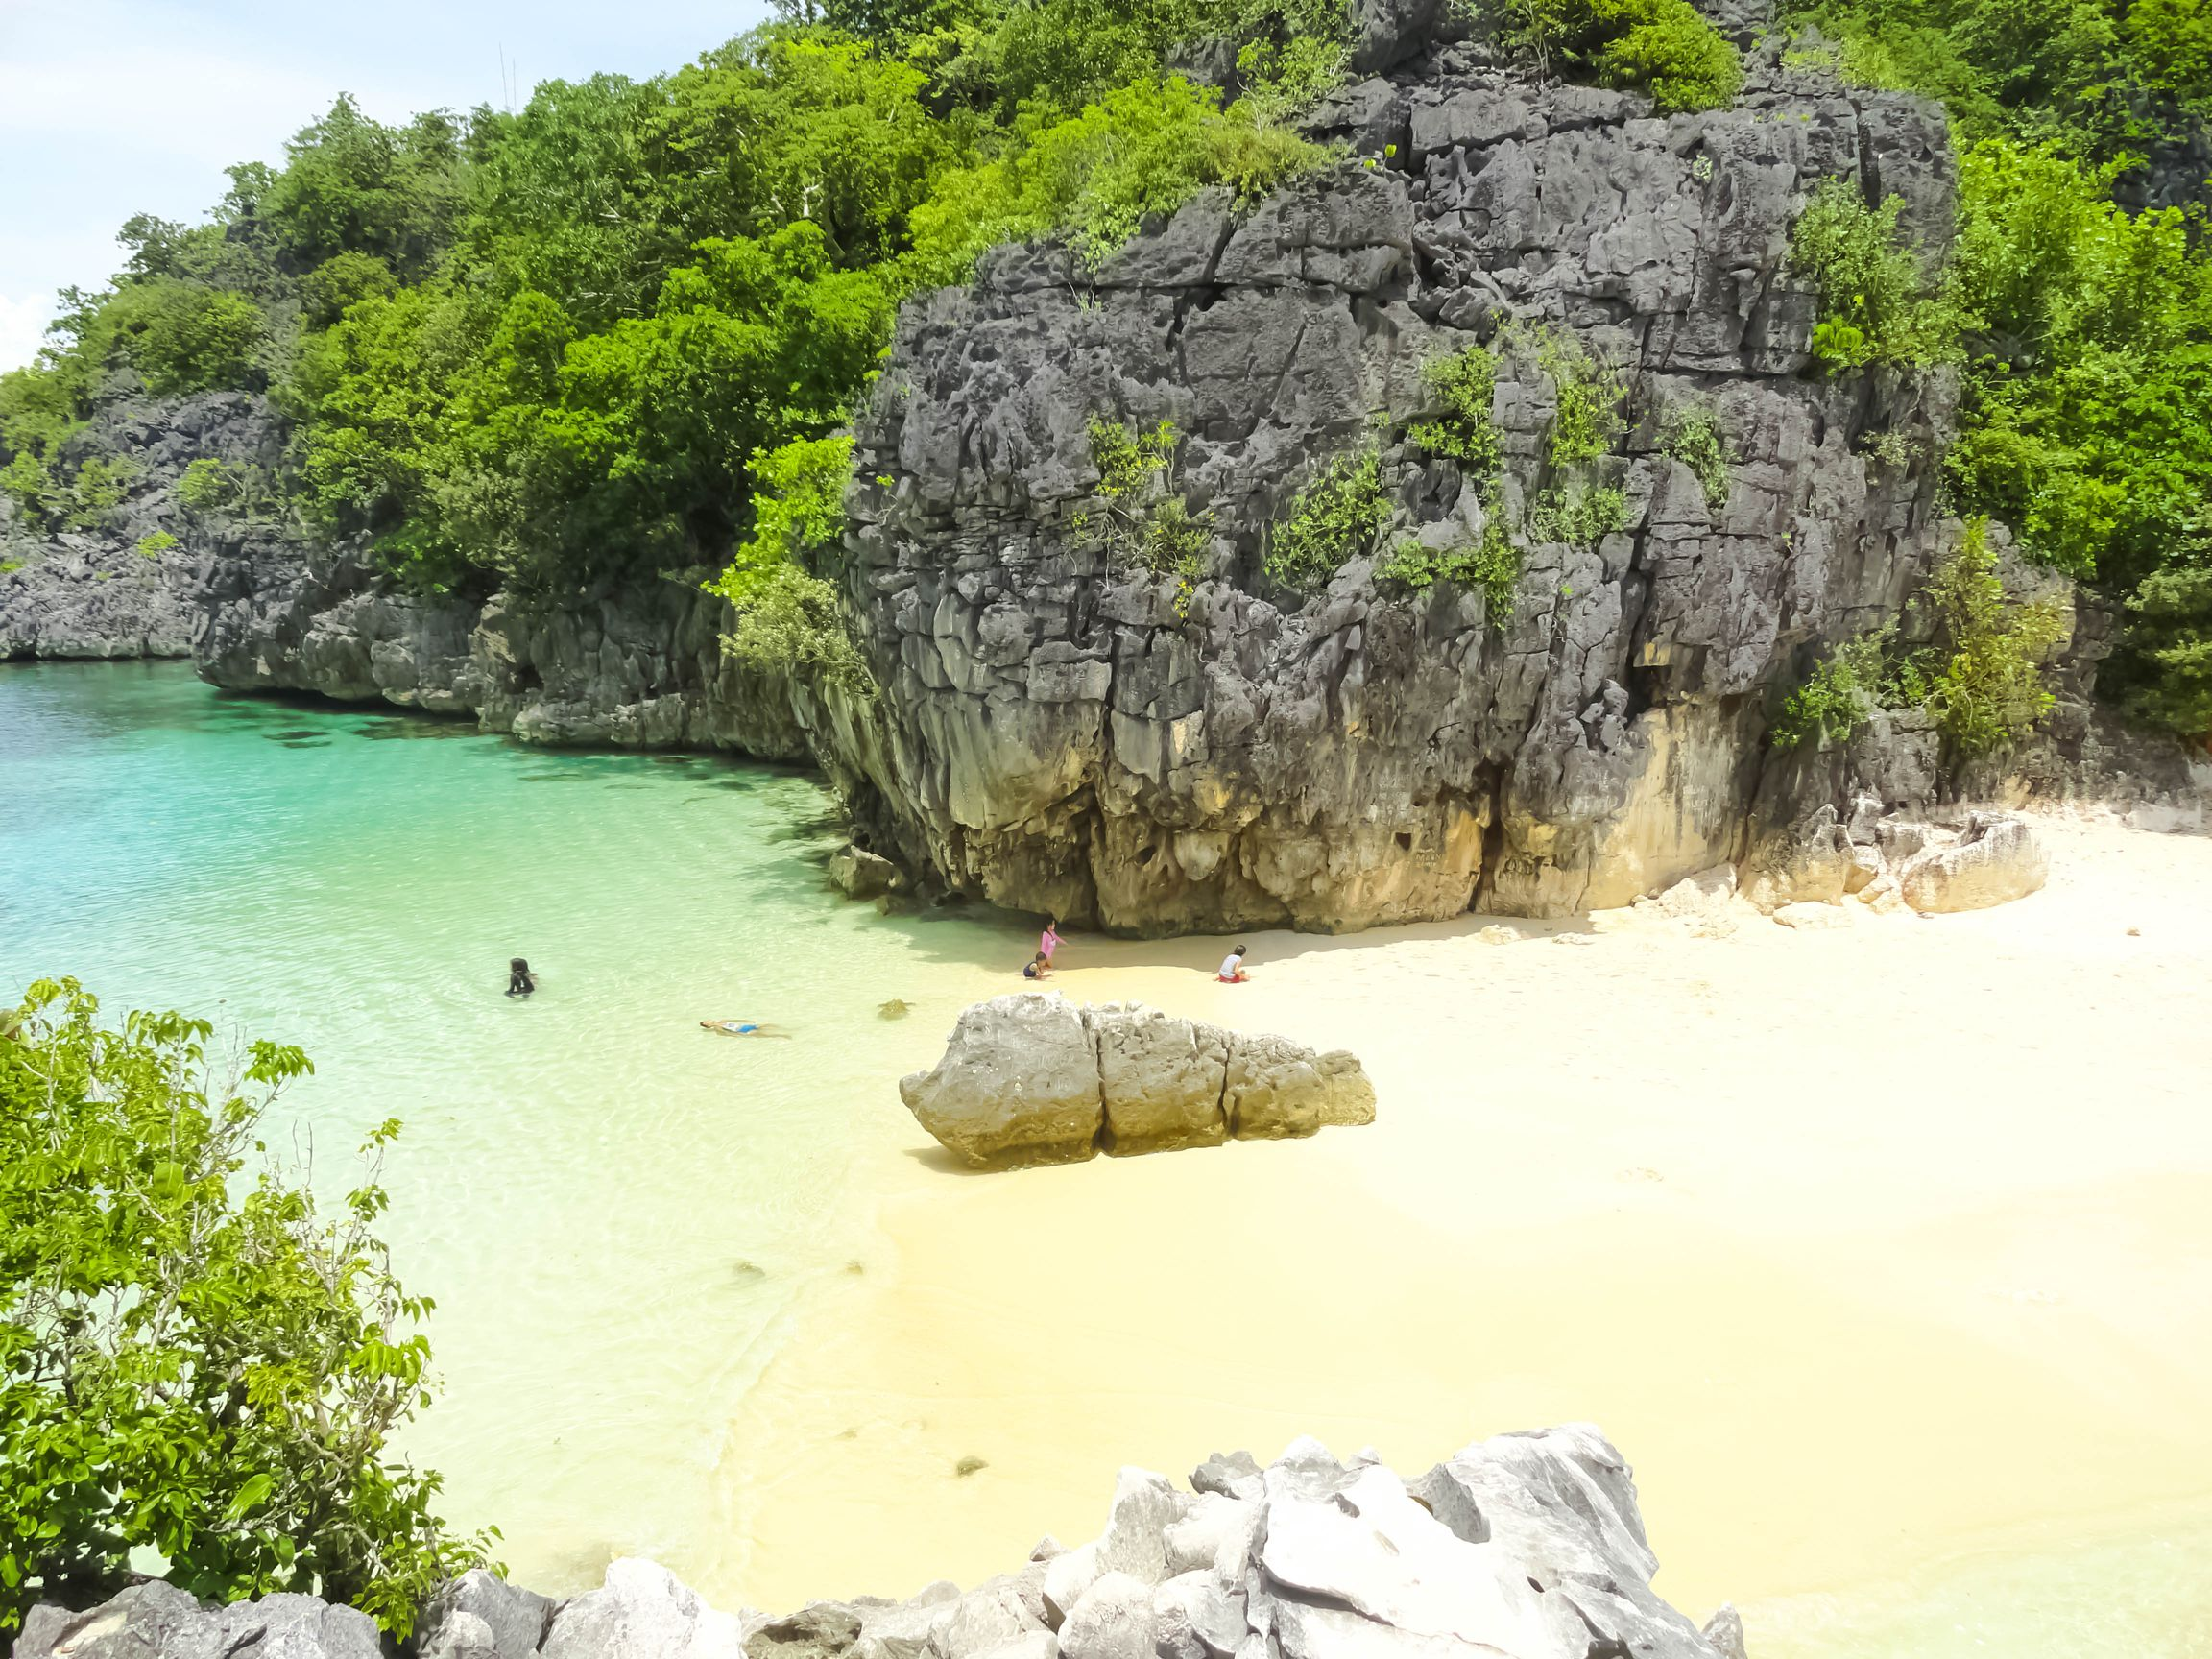 White sand beach with limestone cliffs and clear waters in Caramoan, Philippines